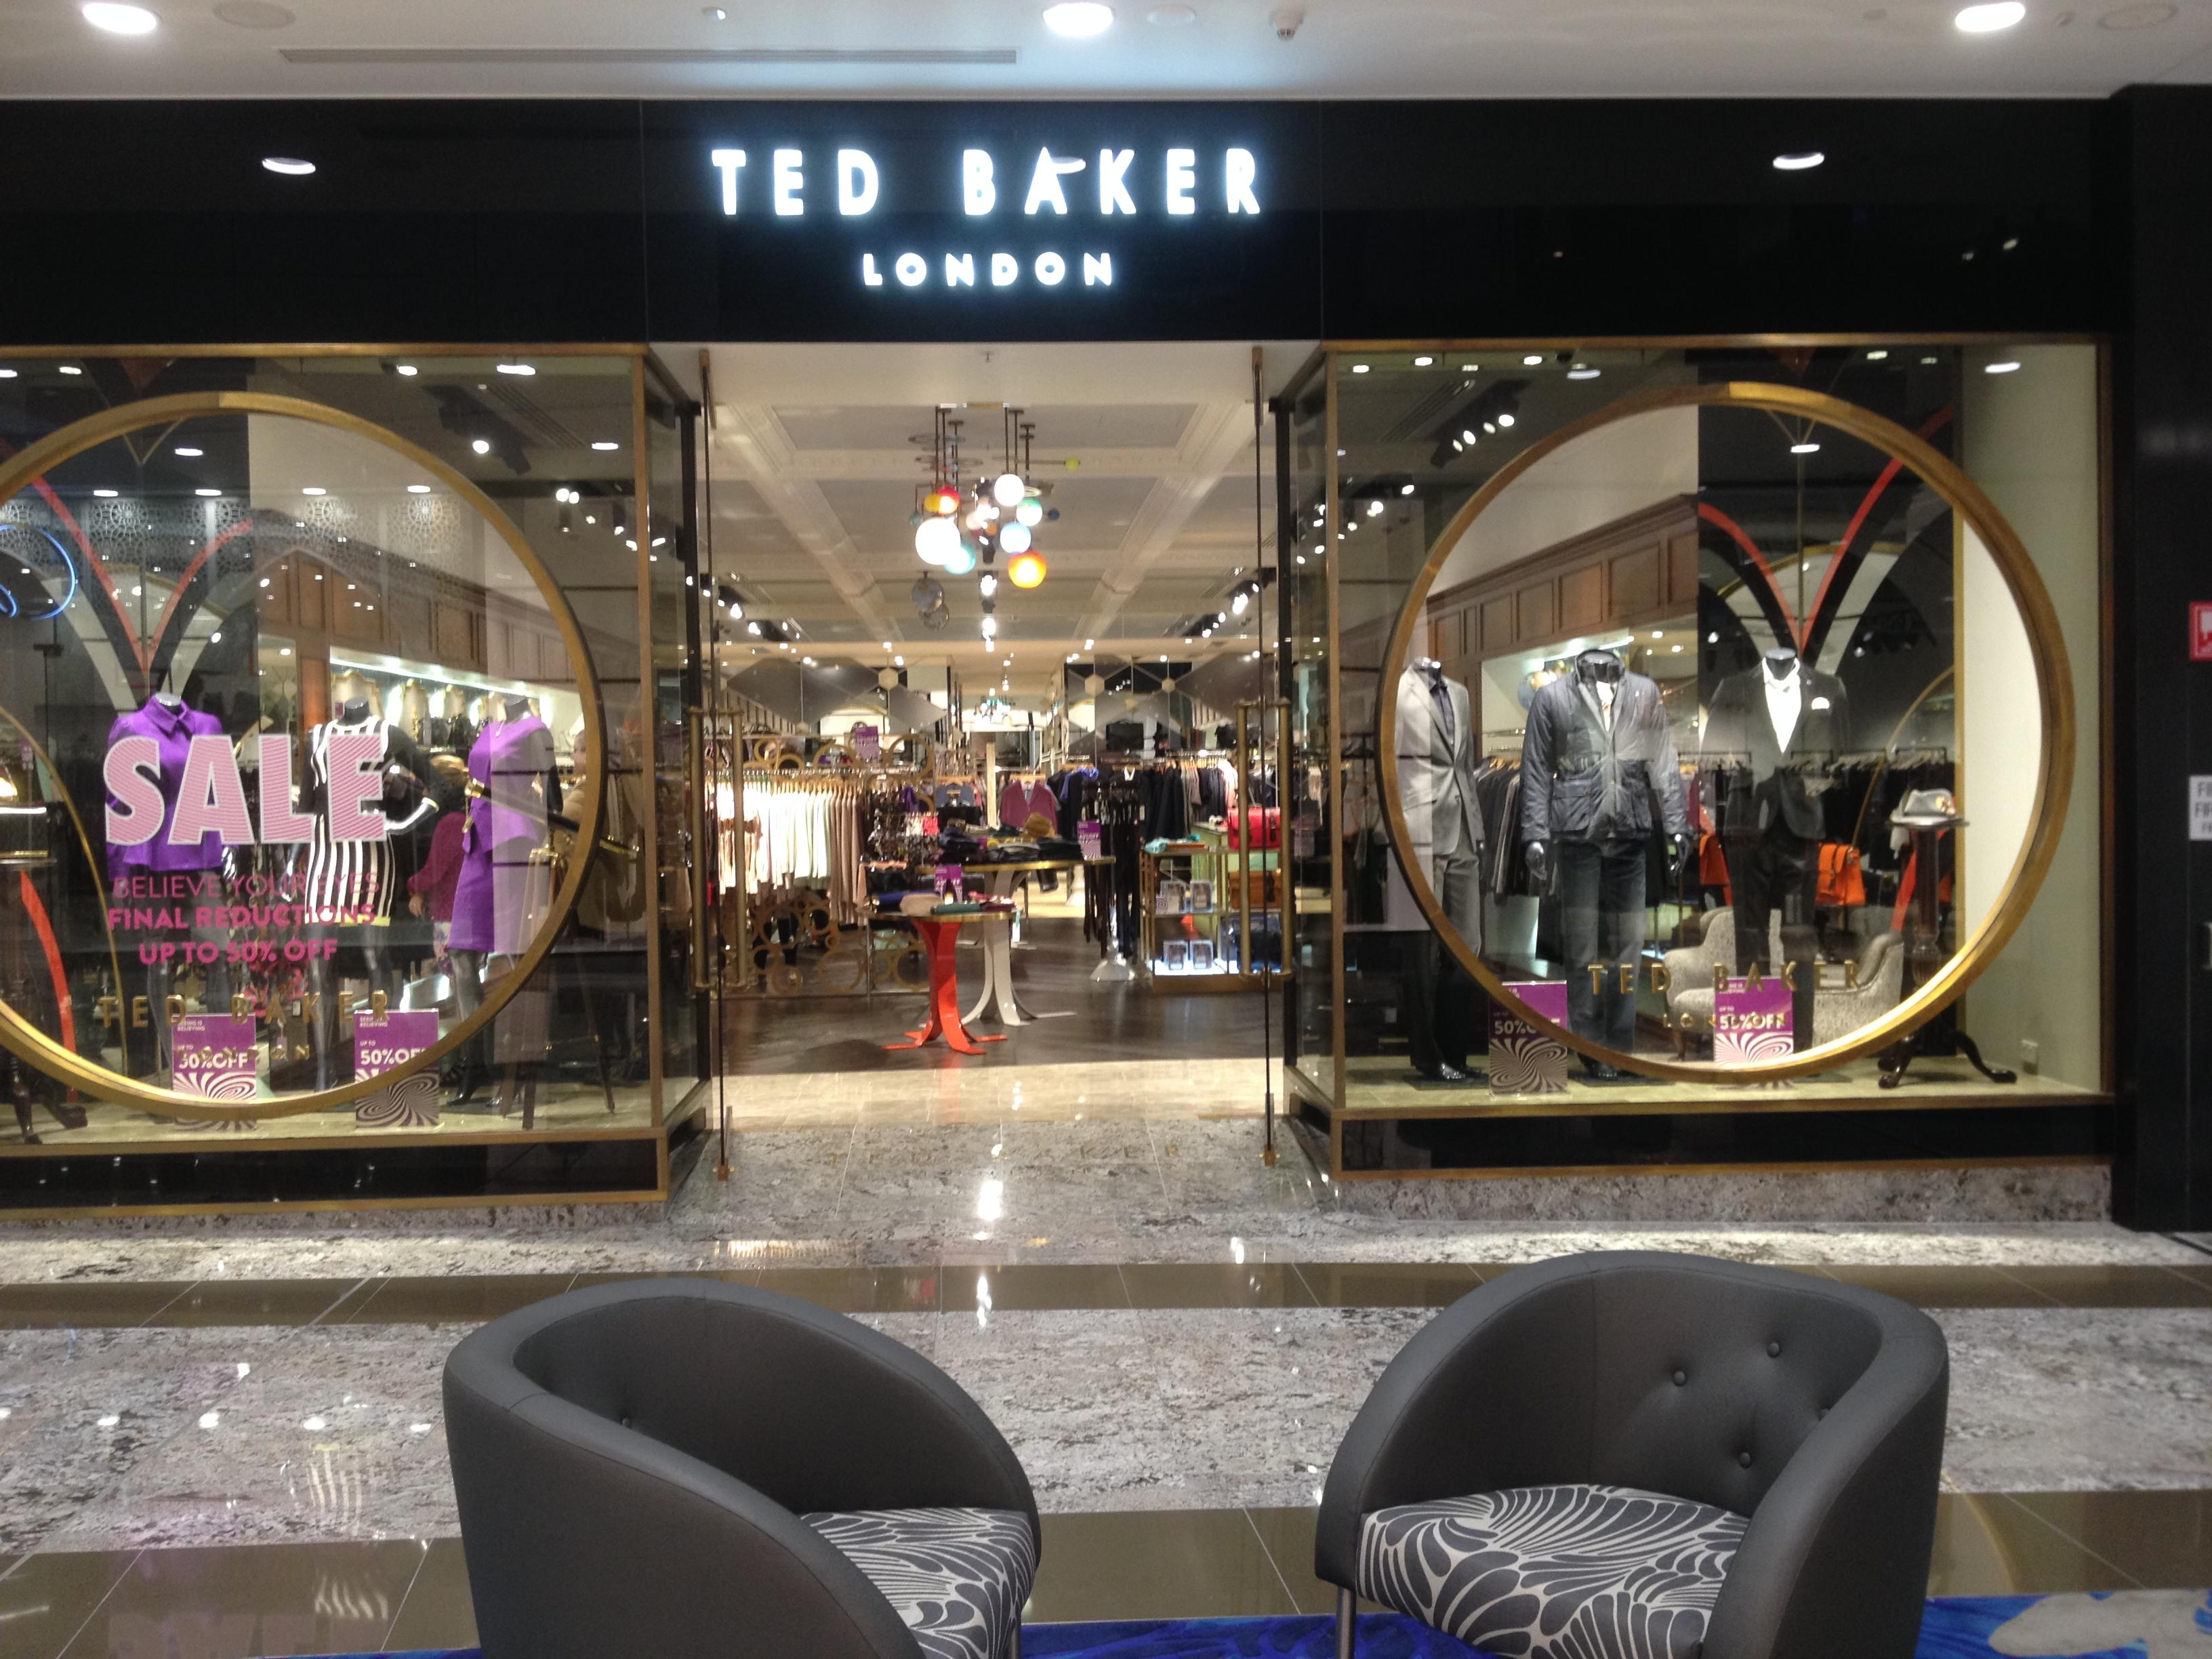 PTSG to tailor specialist services solution for Ted Baker